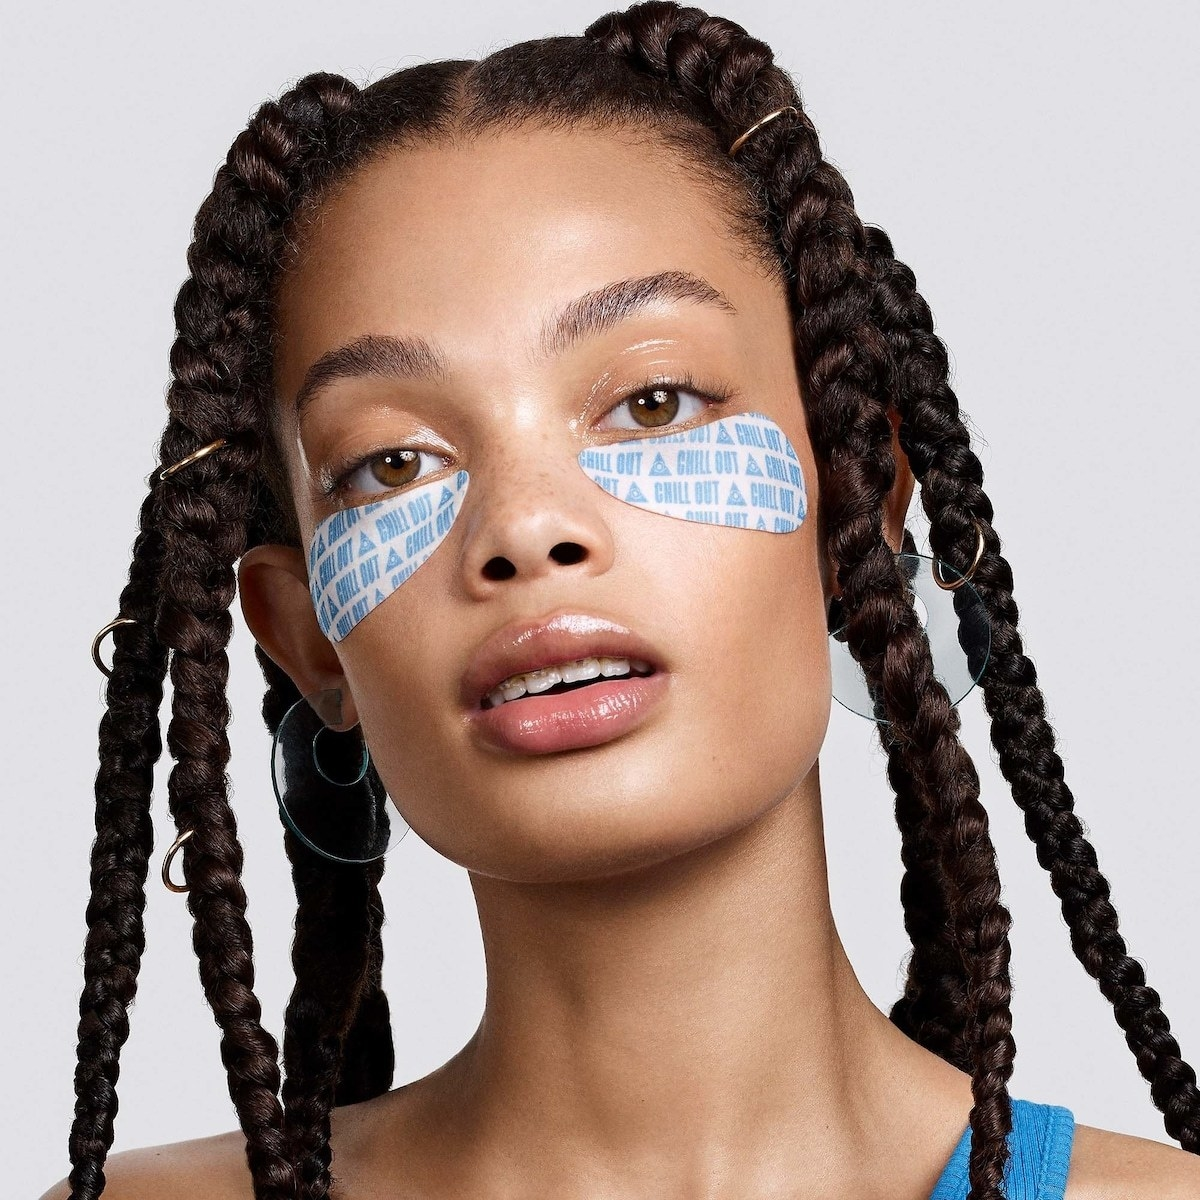 model wearing blue eye patches